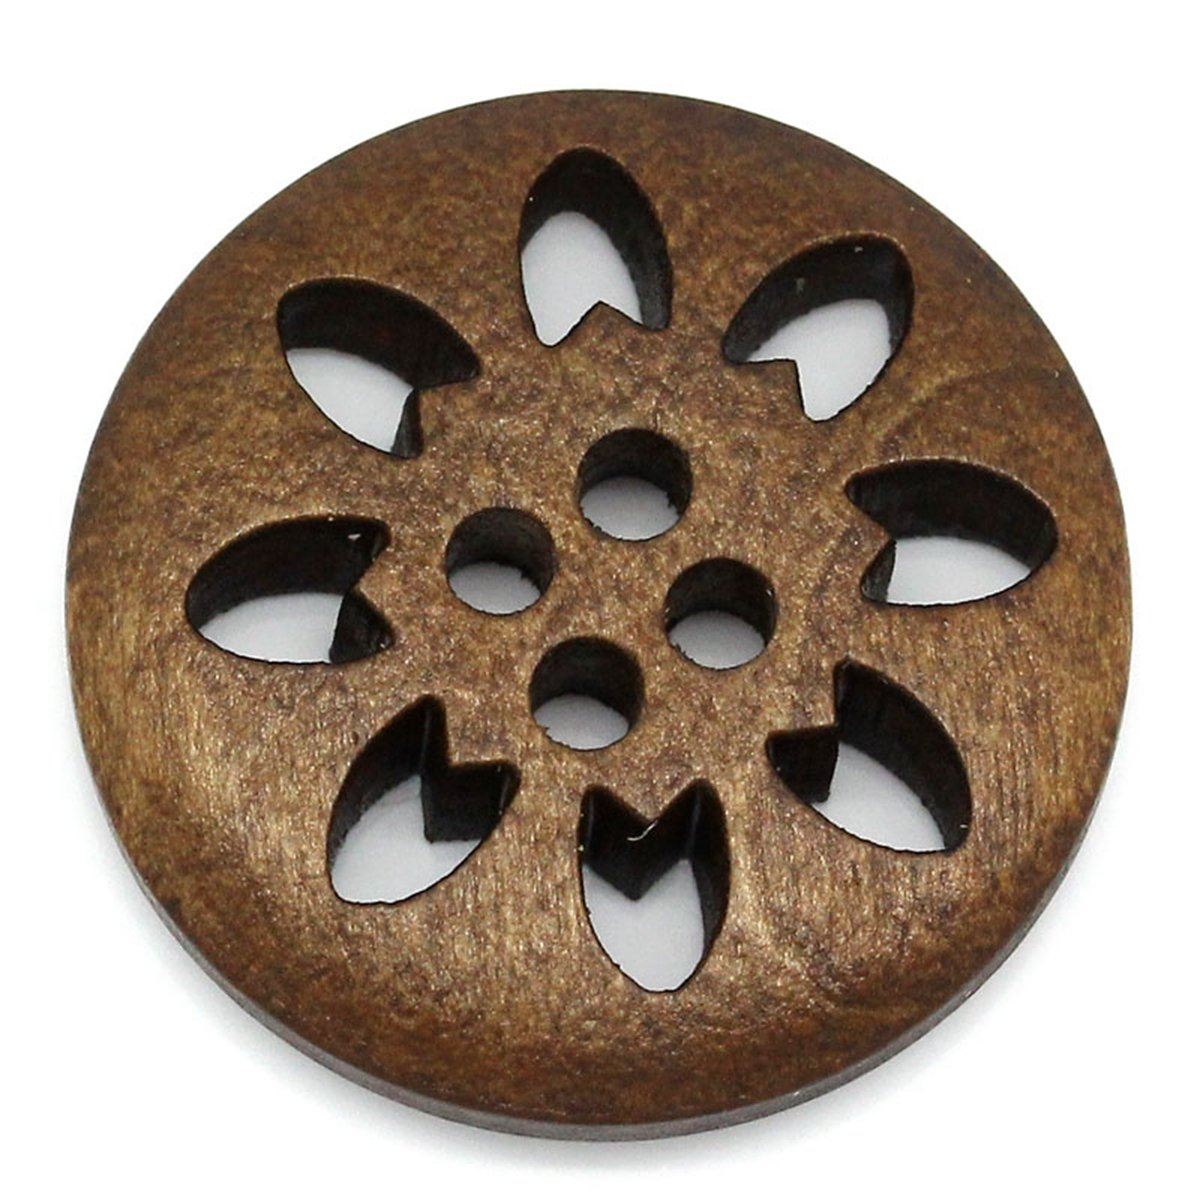 HOUSWEETY 50PCs Wood Buttons Sewing Snowflake Carved 4 Holes Brown 25mm Dia.(1) HOUSWEETYB27355